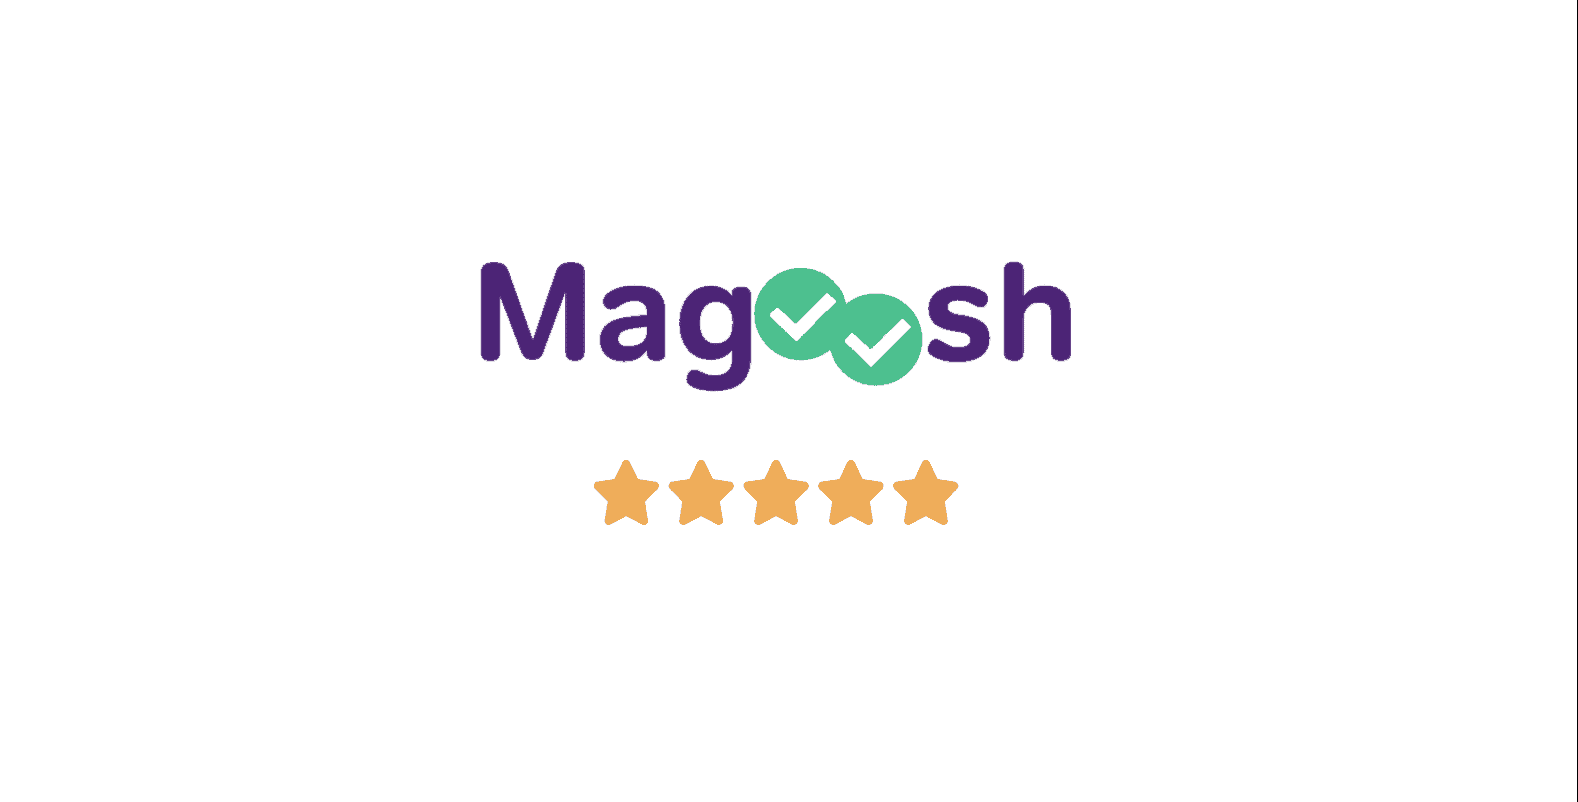 Magoosh GRE prep course log with five star rating